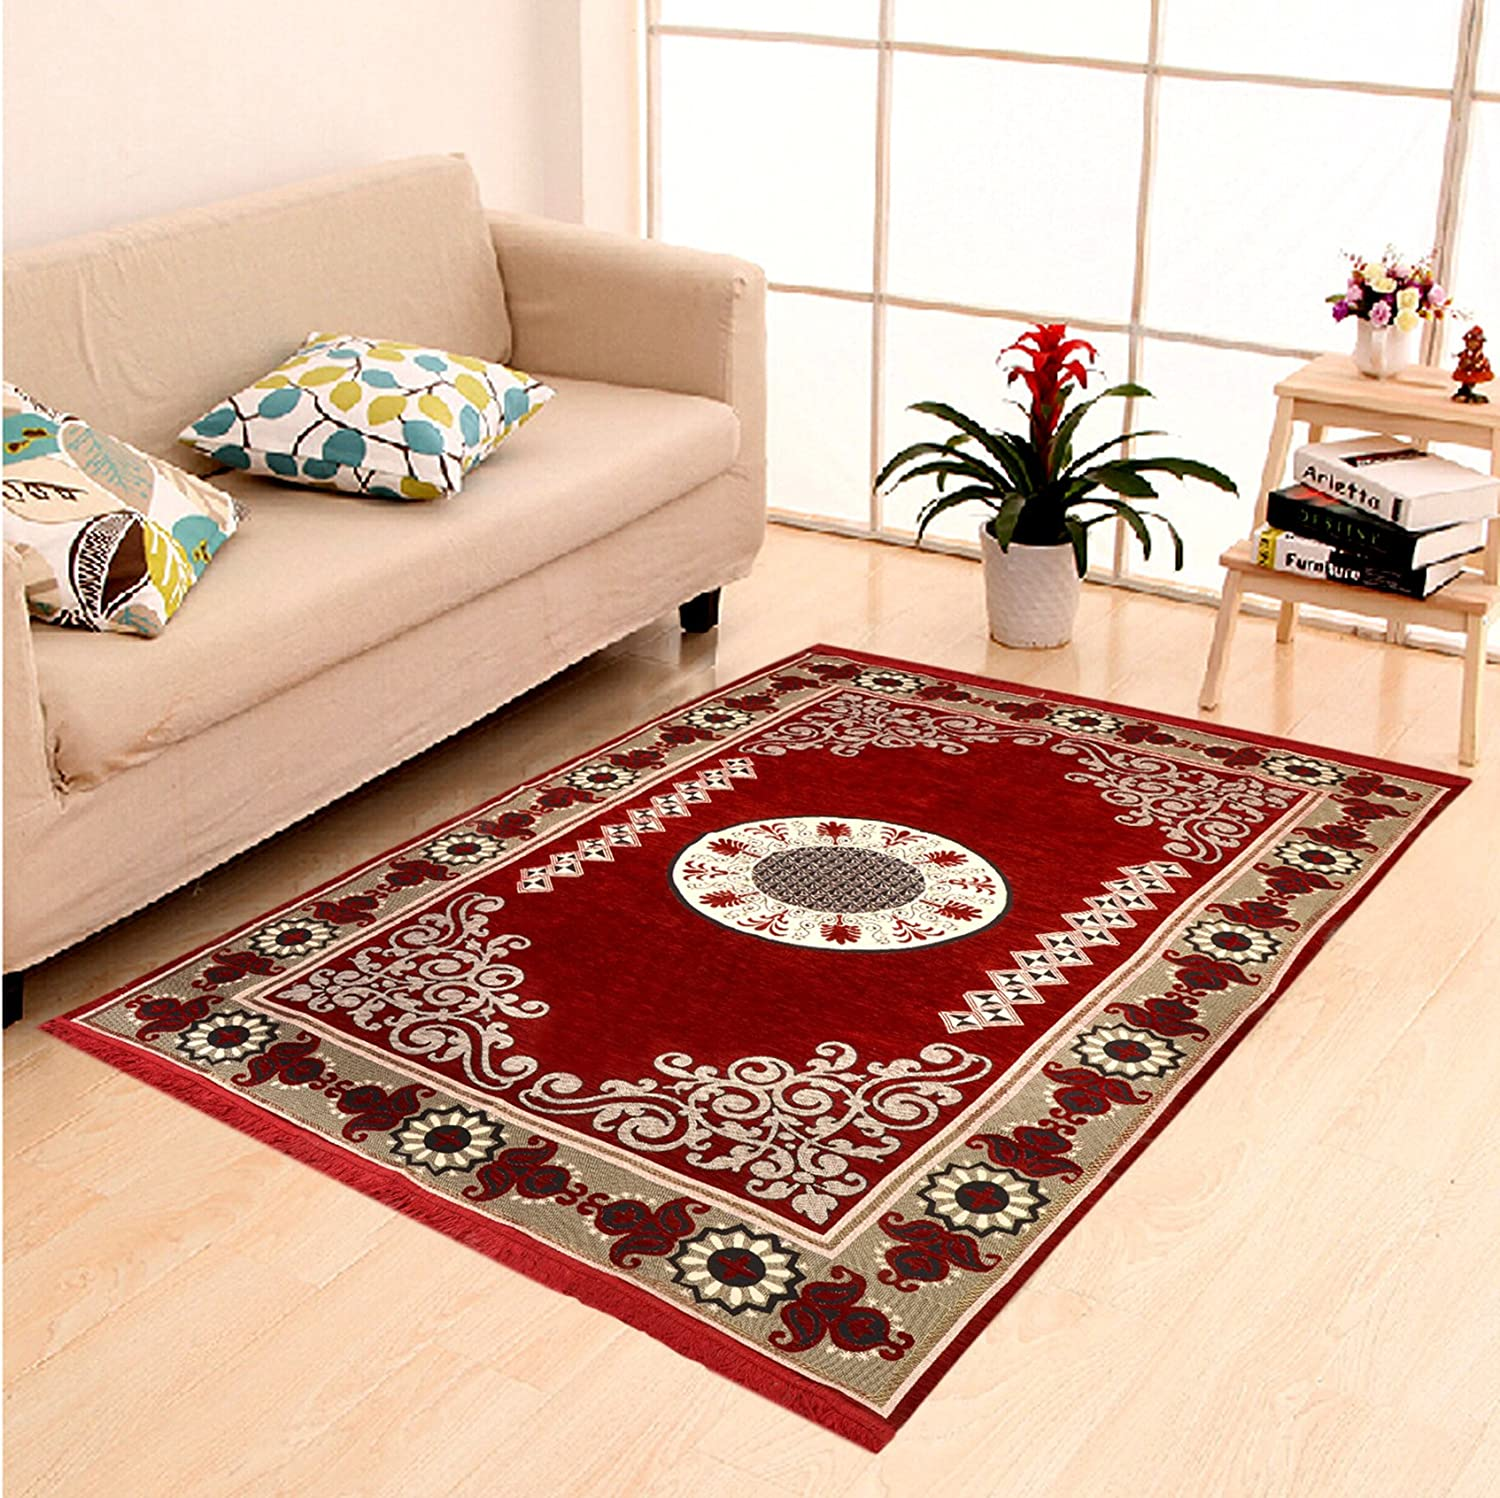 Buy Home Elite Ethnic Velvet Touch Abstract Chenille Carpet 55 X80 Maroon Online At Low Prices In India Amazon In